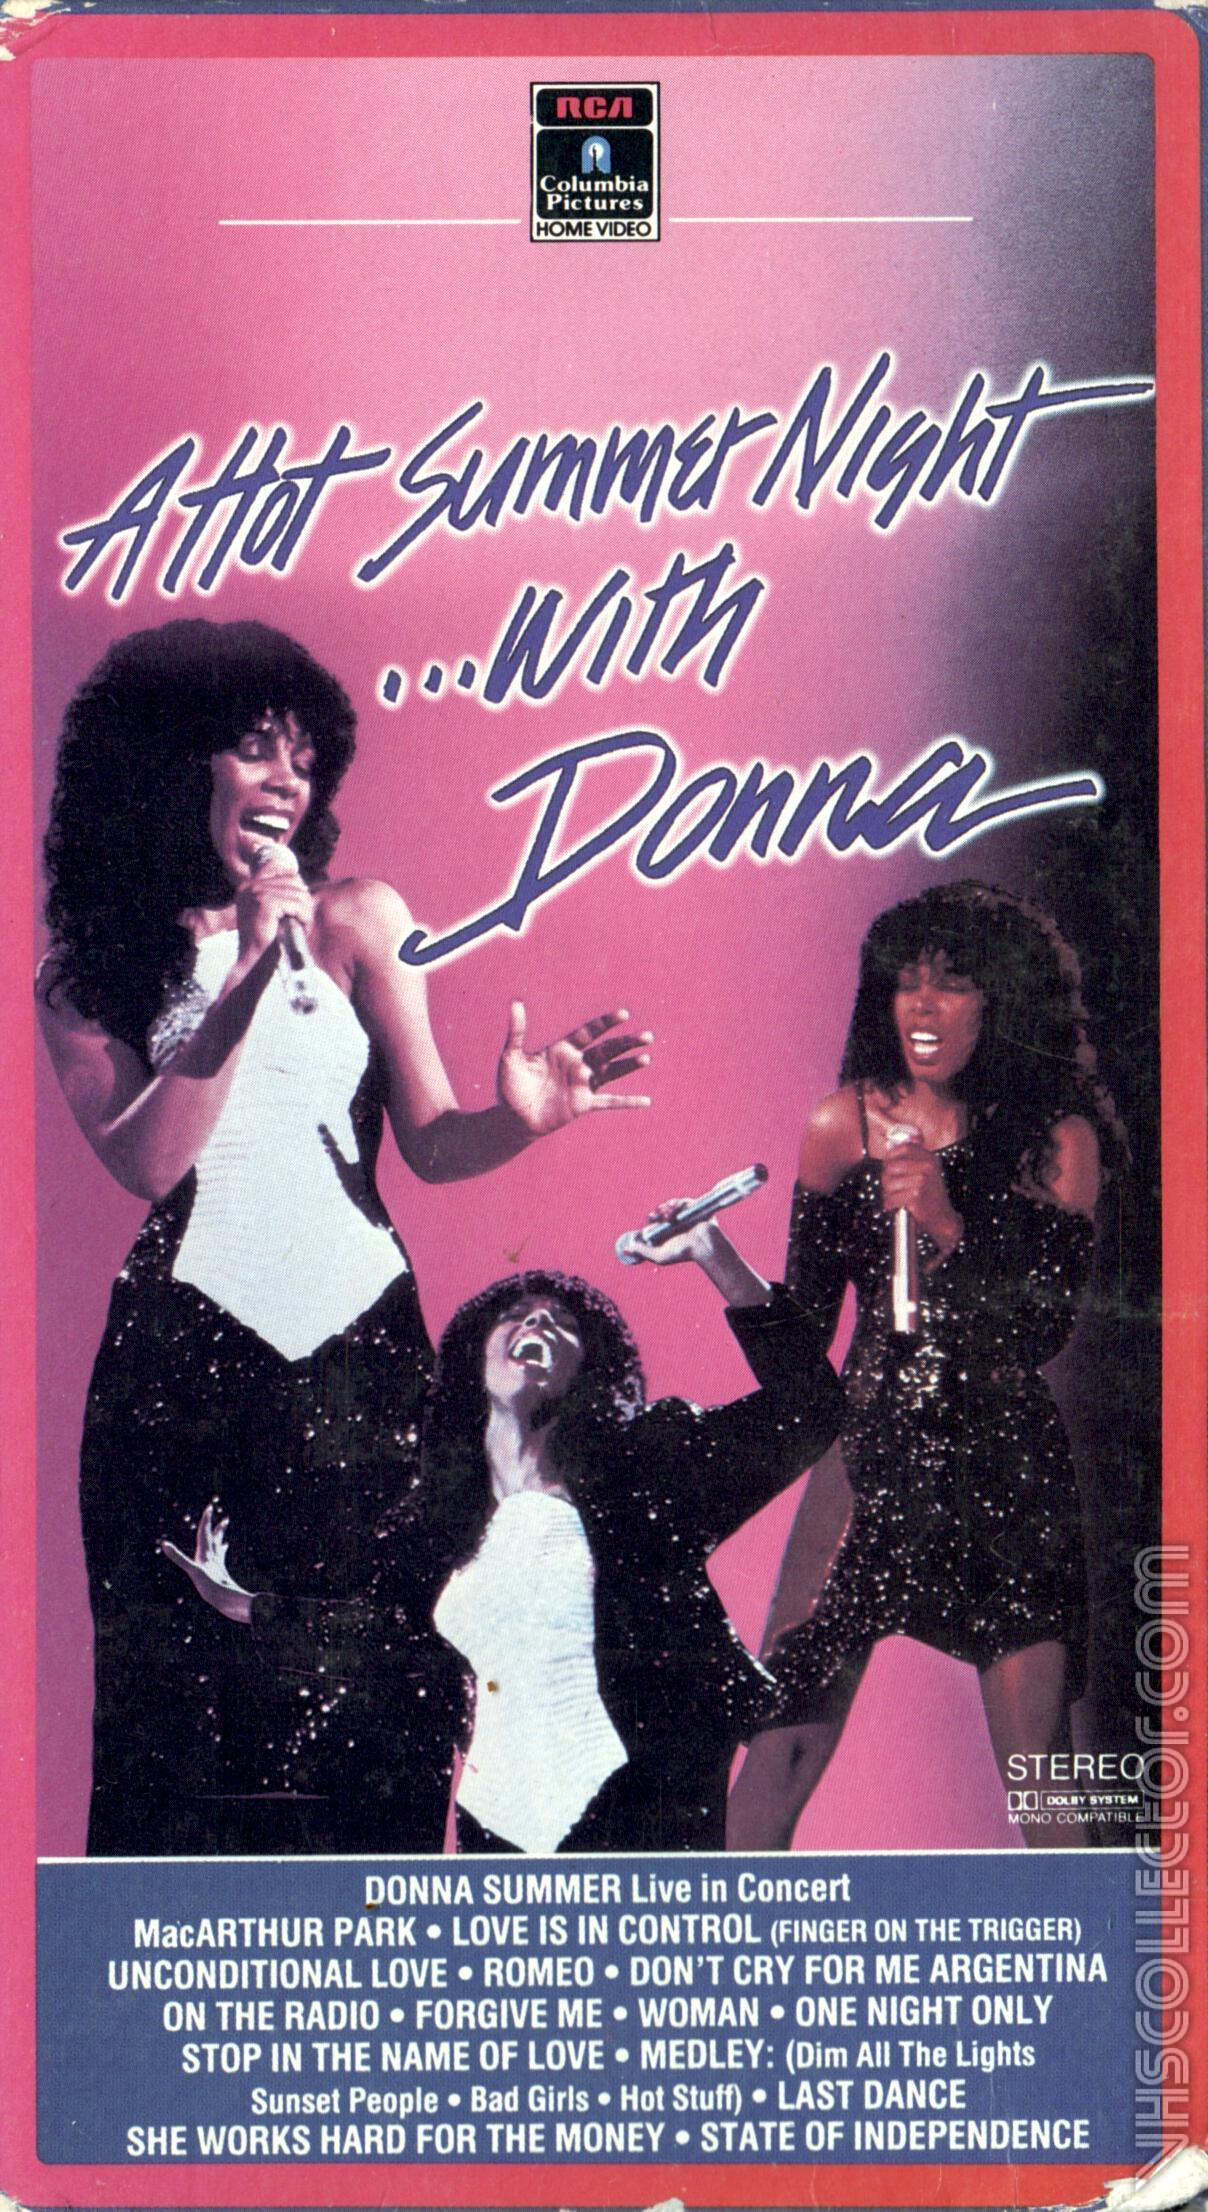 A Hot Summer Night    With Donna | VHSCollector com